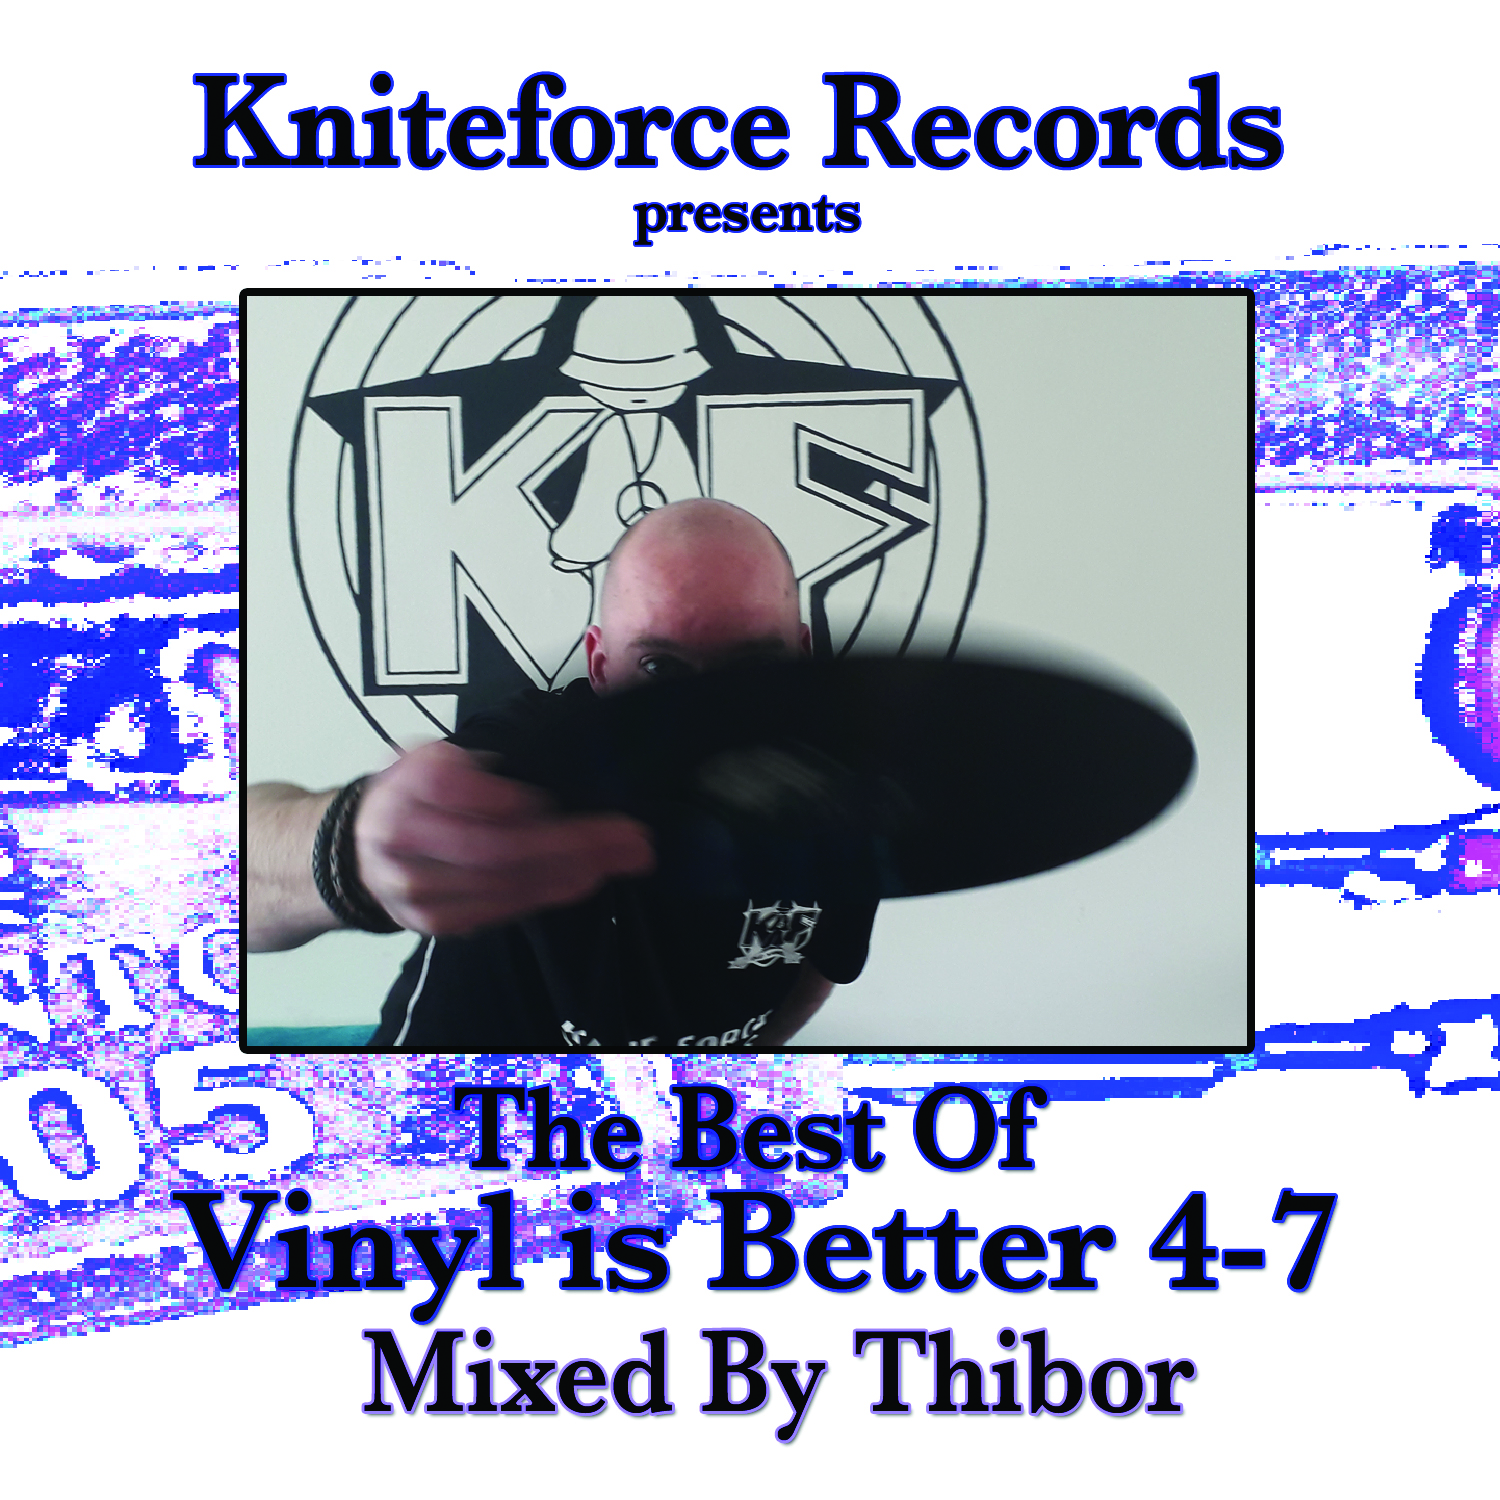 [KFCD022] Various - The Best Of Vinyl Is Better 4-7 (Mixed By Thibor) (Digital Only)